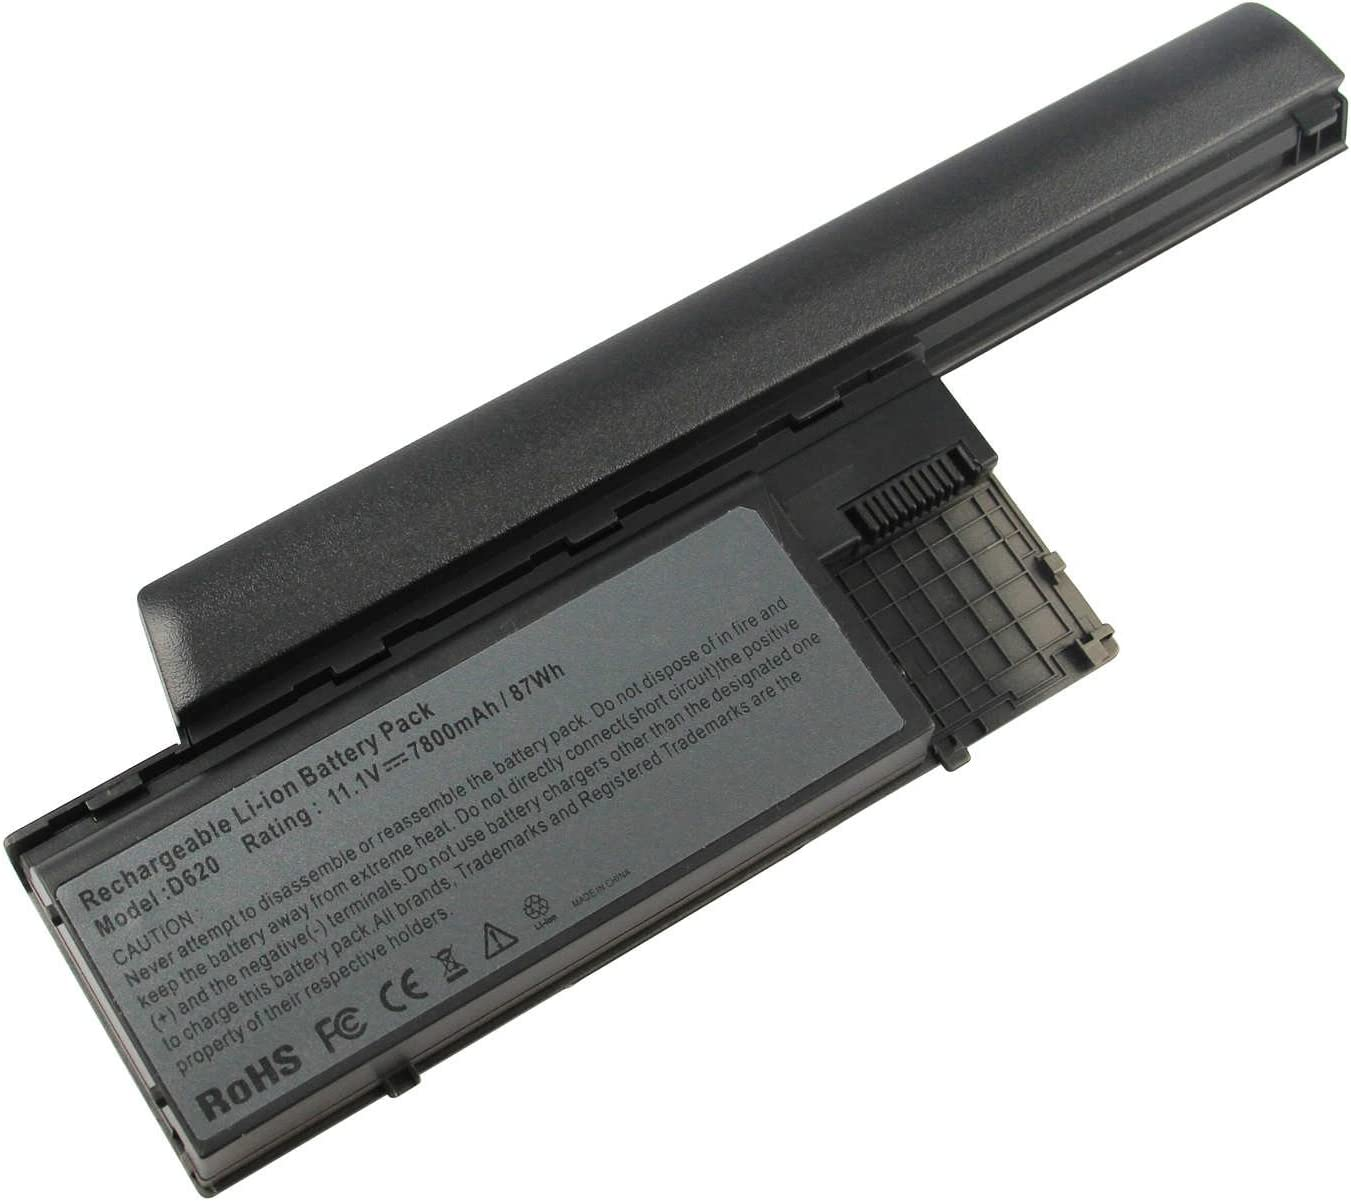 ARyee 7800mAh 11.1V Battery Laptop Battery Replacement for Dell Latitude D620 D630 D631 D640 D630C D630N D630 ATG D630 UMA D630N Precision M2300